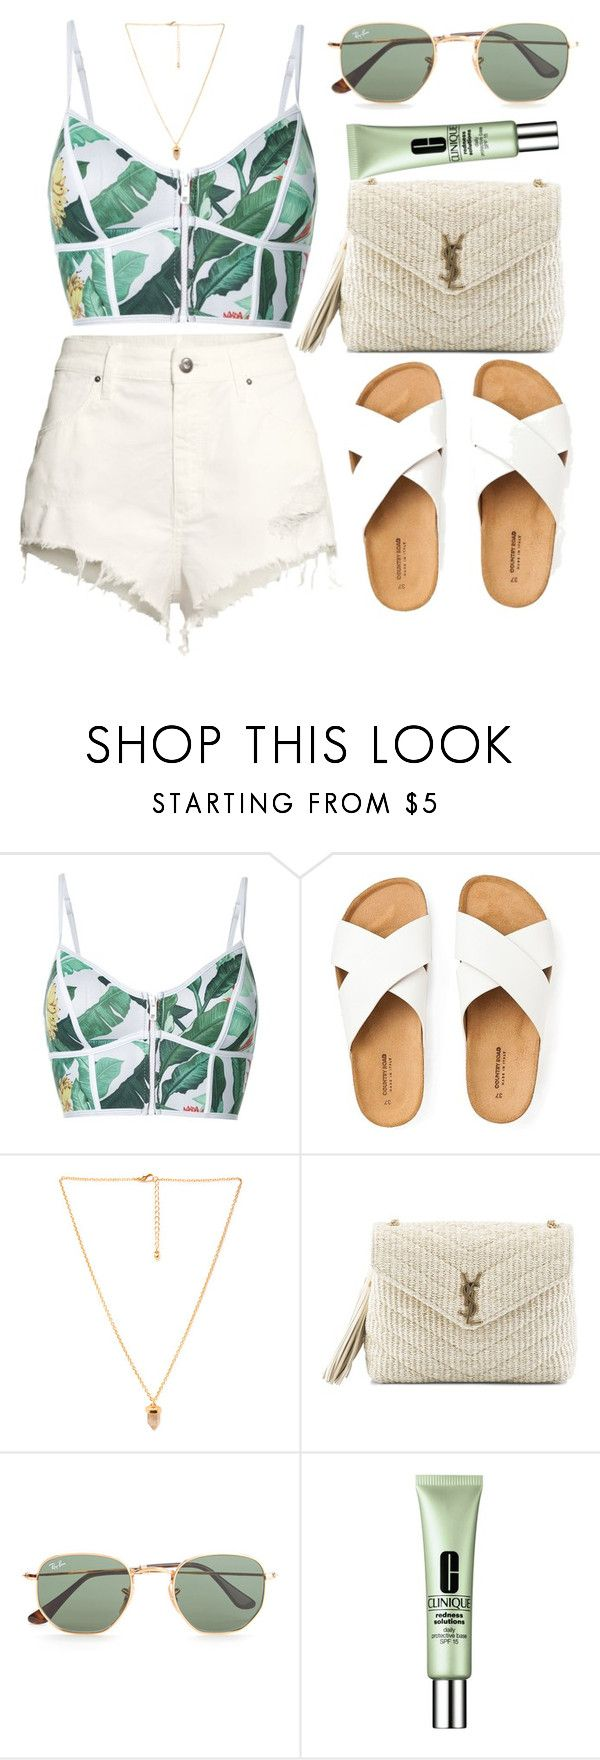 """""""Feel green"""" by amoiblog ❤ liked on Polyvore featuring Duskii, Love 21, Yves Saint Laurent, Ray-Ban, Clinique and H&M"""